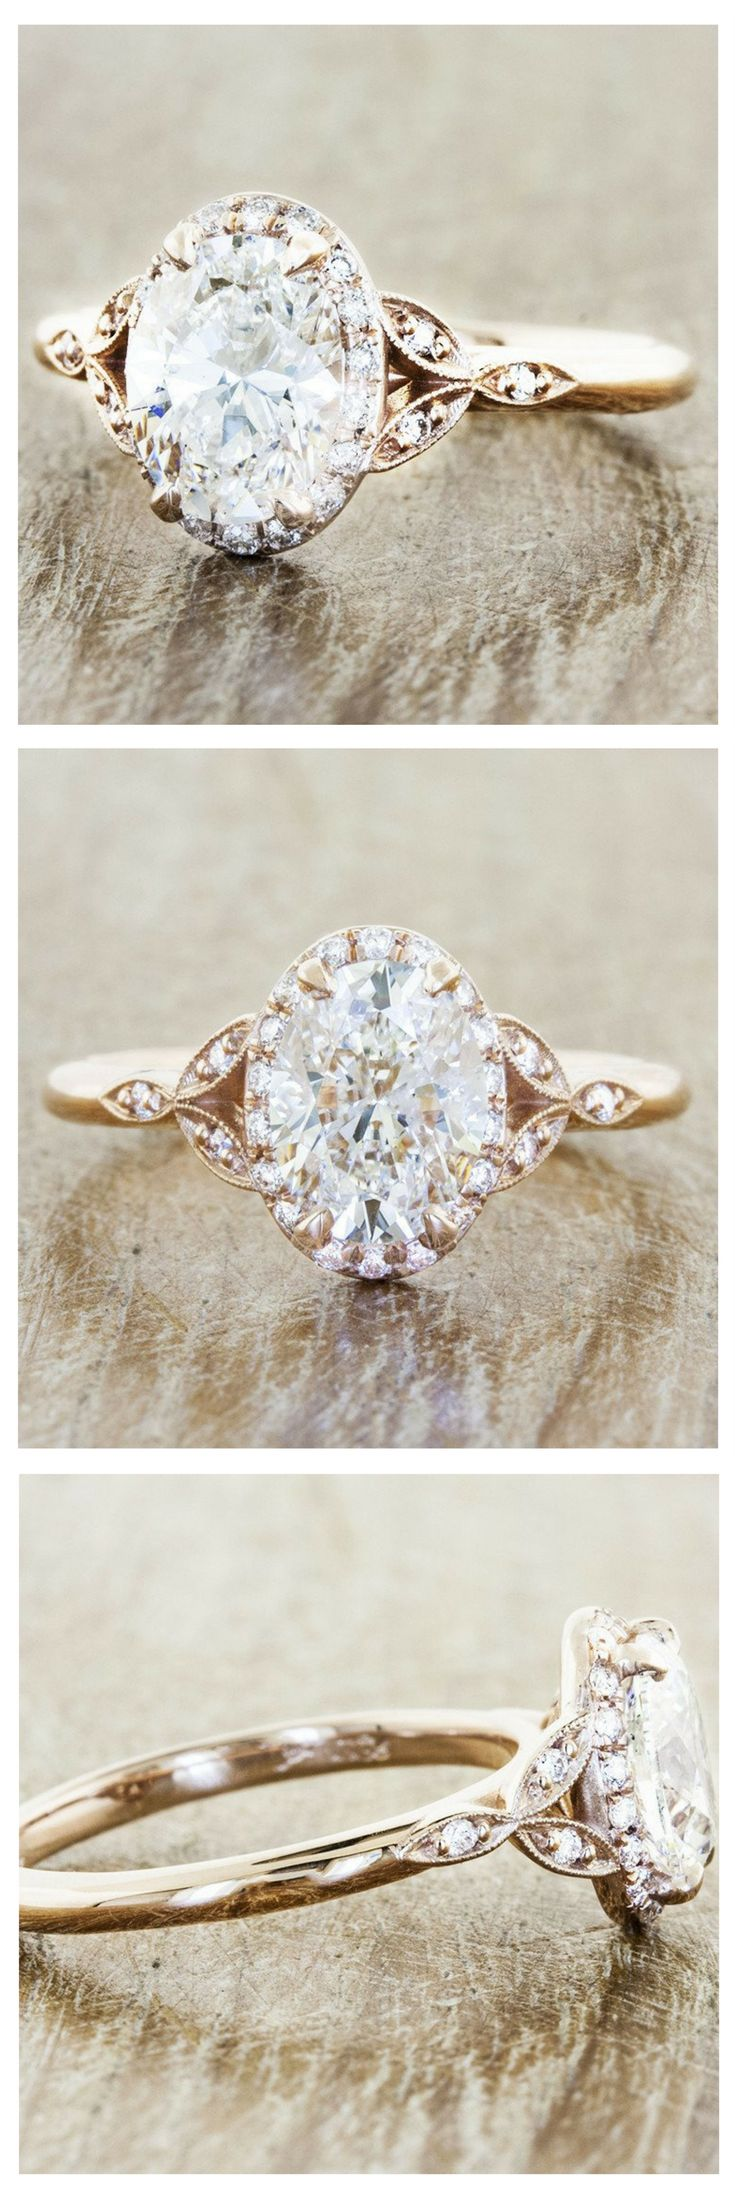 The Rachael is a custom engagement ring crafted with a brilliant, conflict-free oval cut diamond wrapped in a rose gold brand. by Ken & Dana Design.